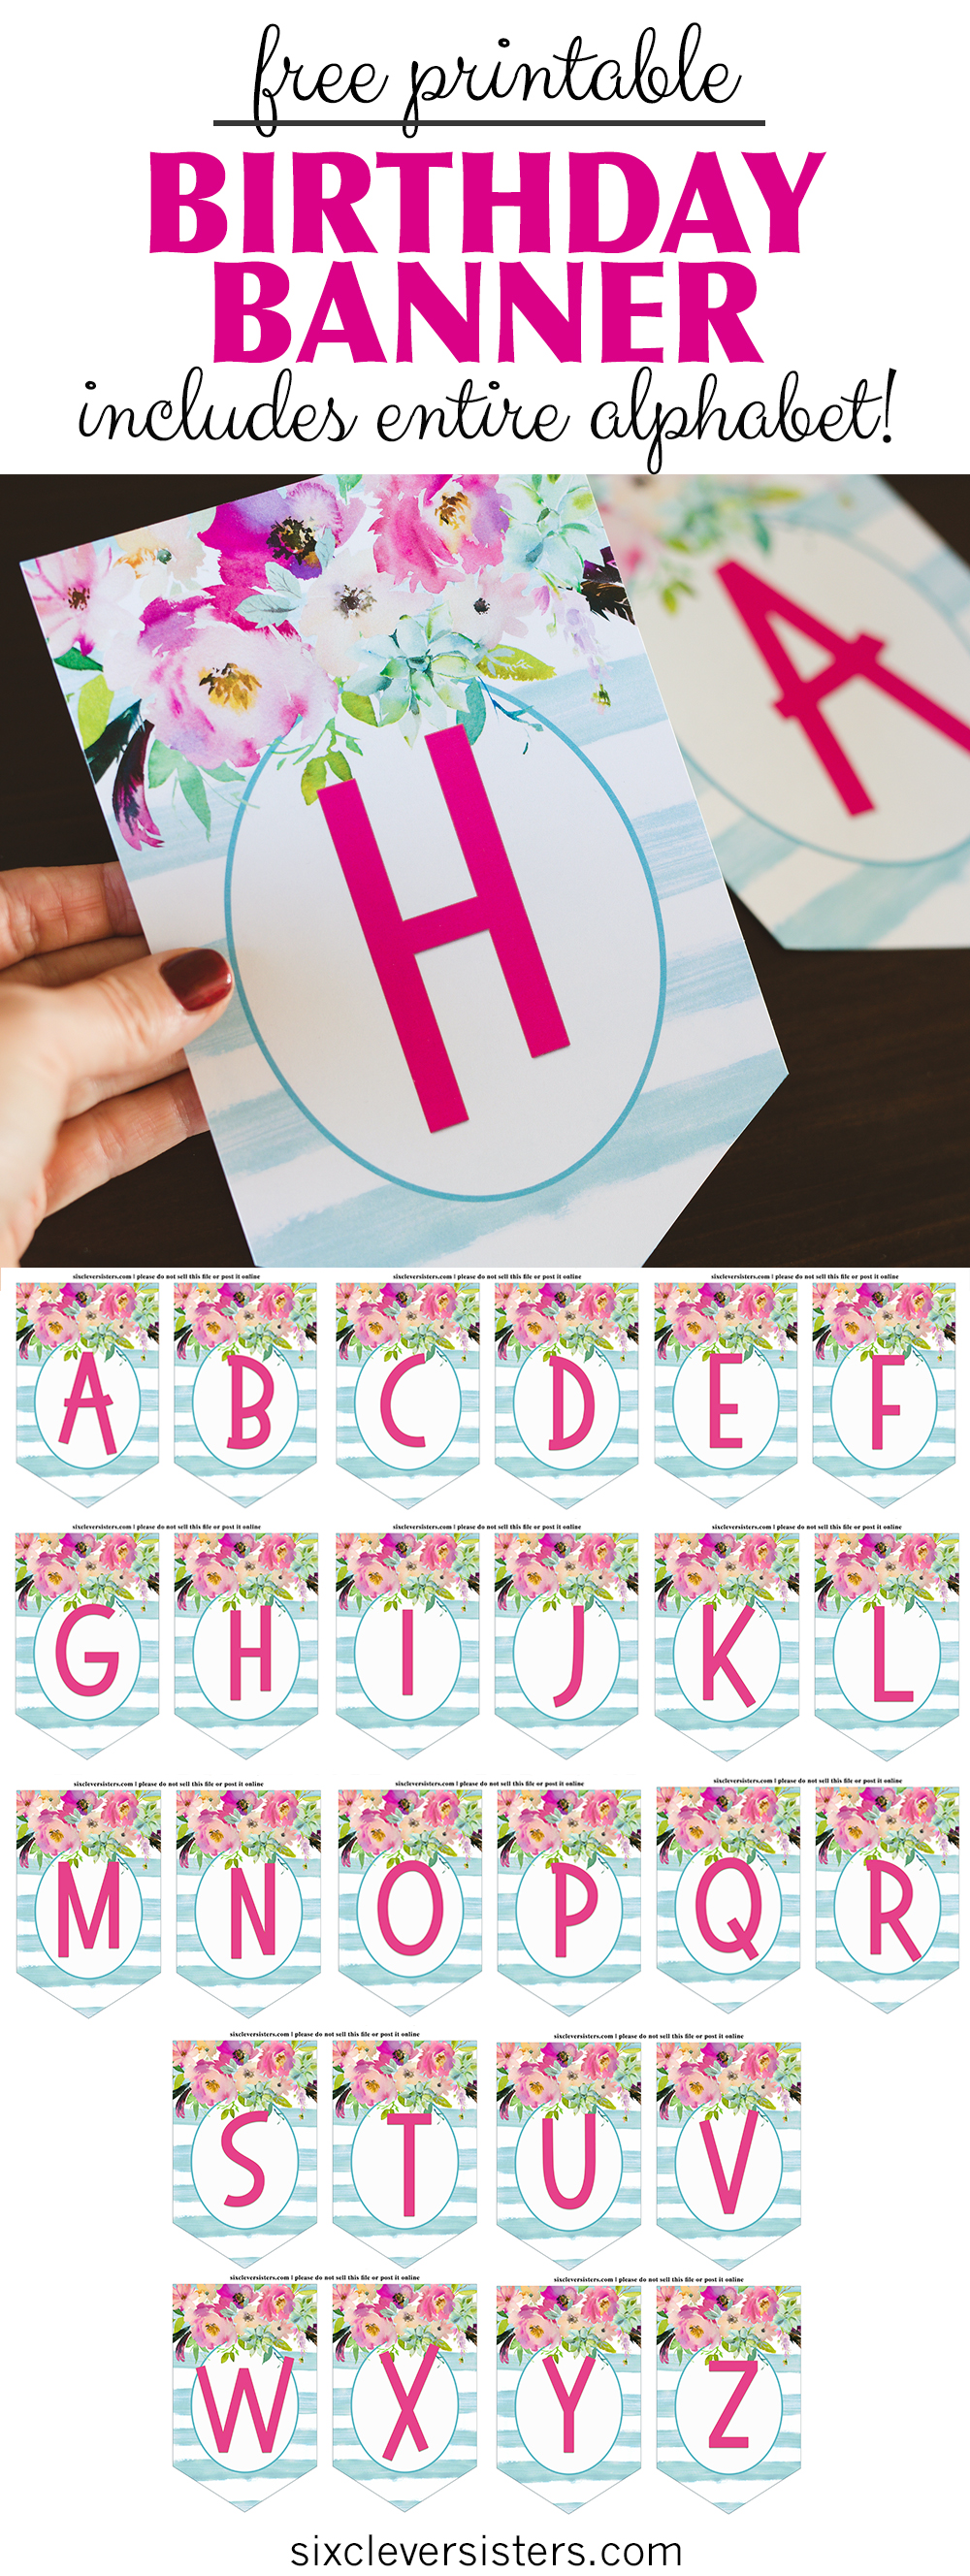 photo relating to Printable Happy Birthday Banner named Free of charge Printable Birthday Banner - 6 Sensible Sisters